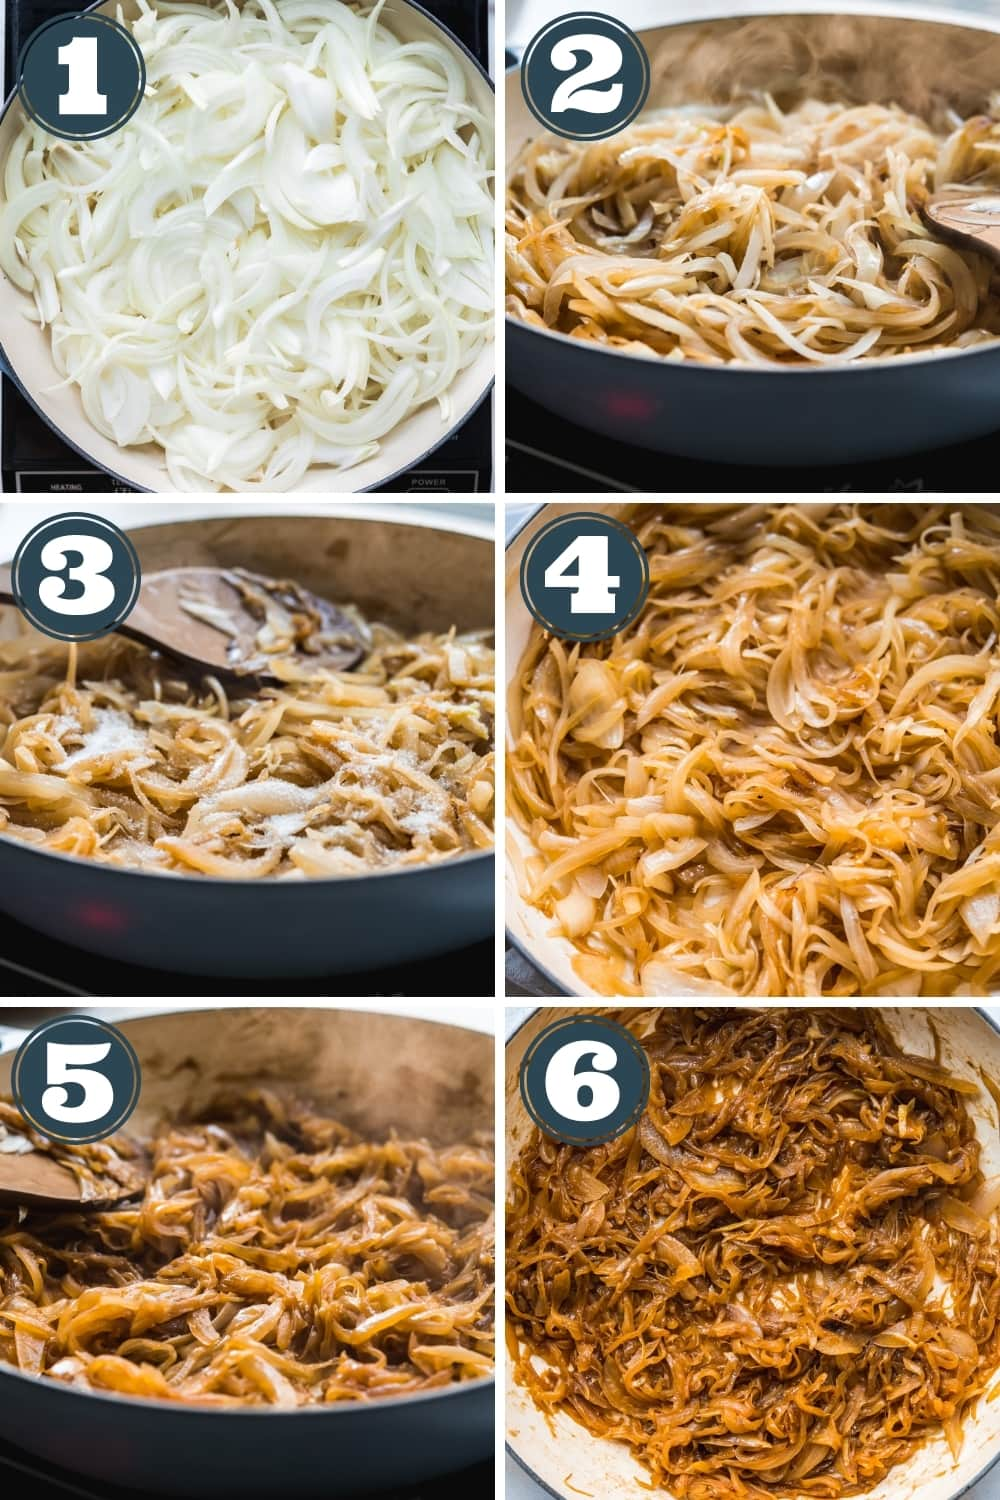 photo grid of caramelized onions from start of cooking process to finish.